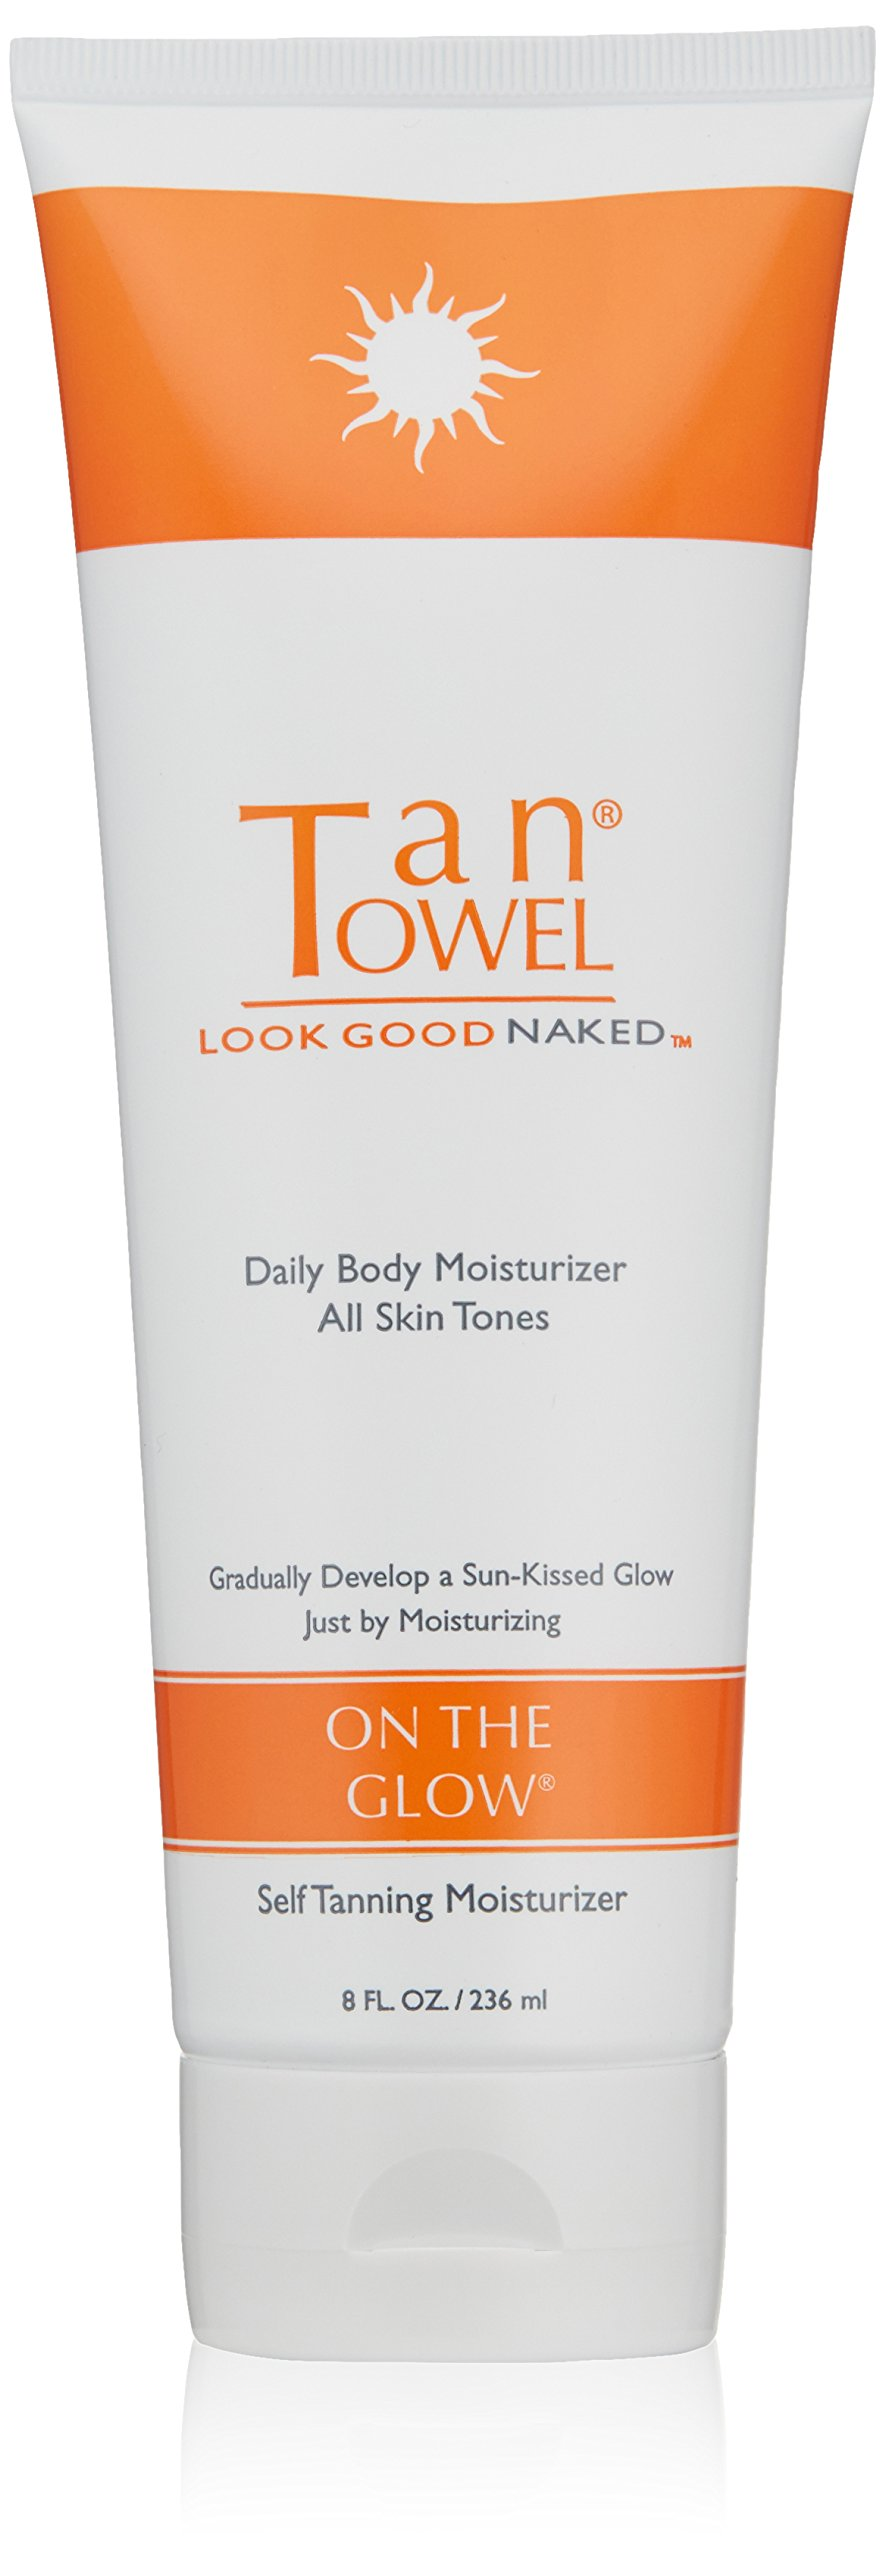 Tan Towel On The Glow Body Self Tanning Moisturizer, 8 Fl Oz